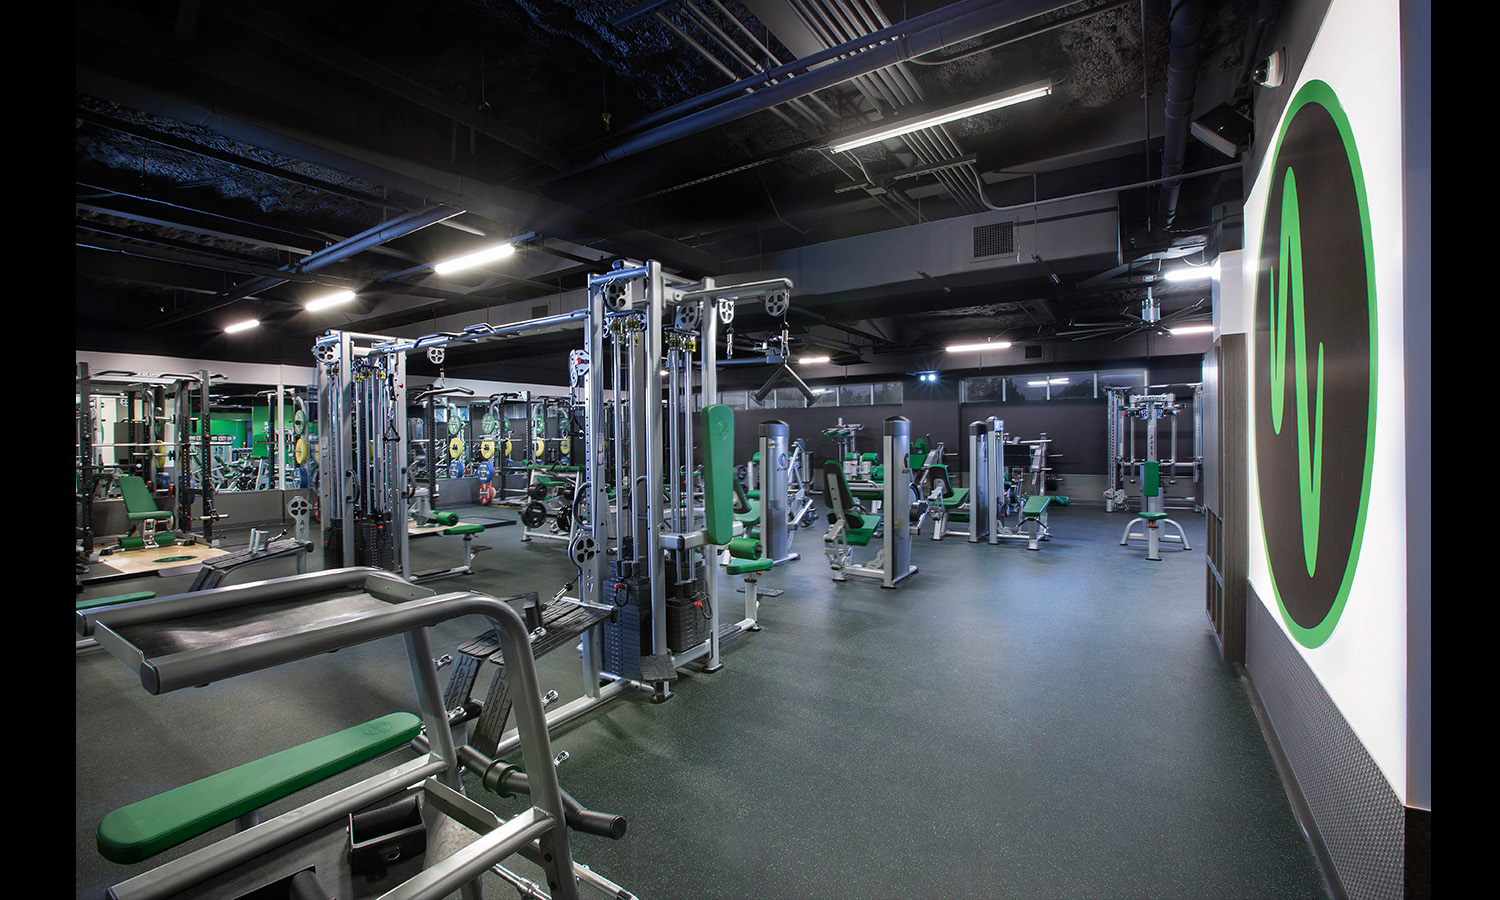 Gym interior Fitness